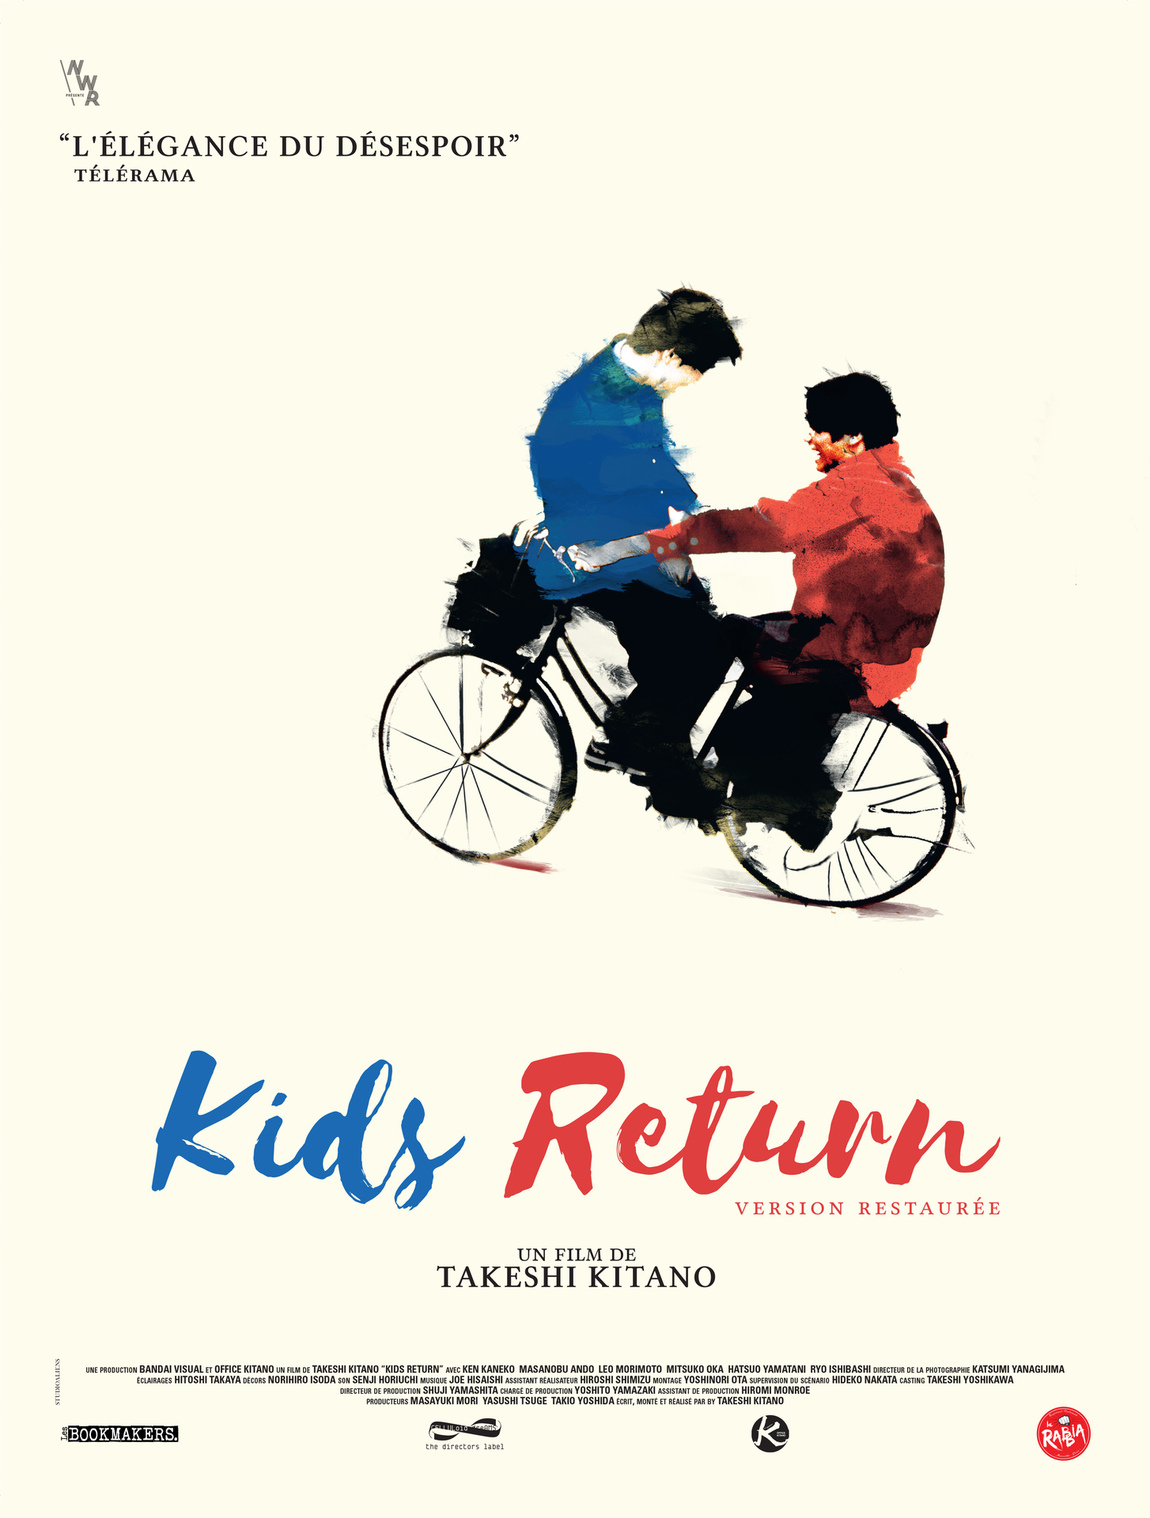 silentnoise - Kids Return Movie Poster